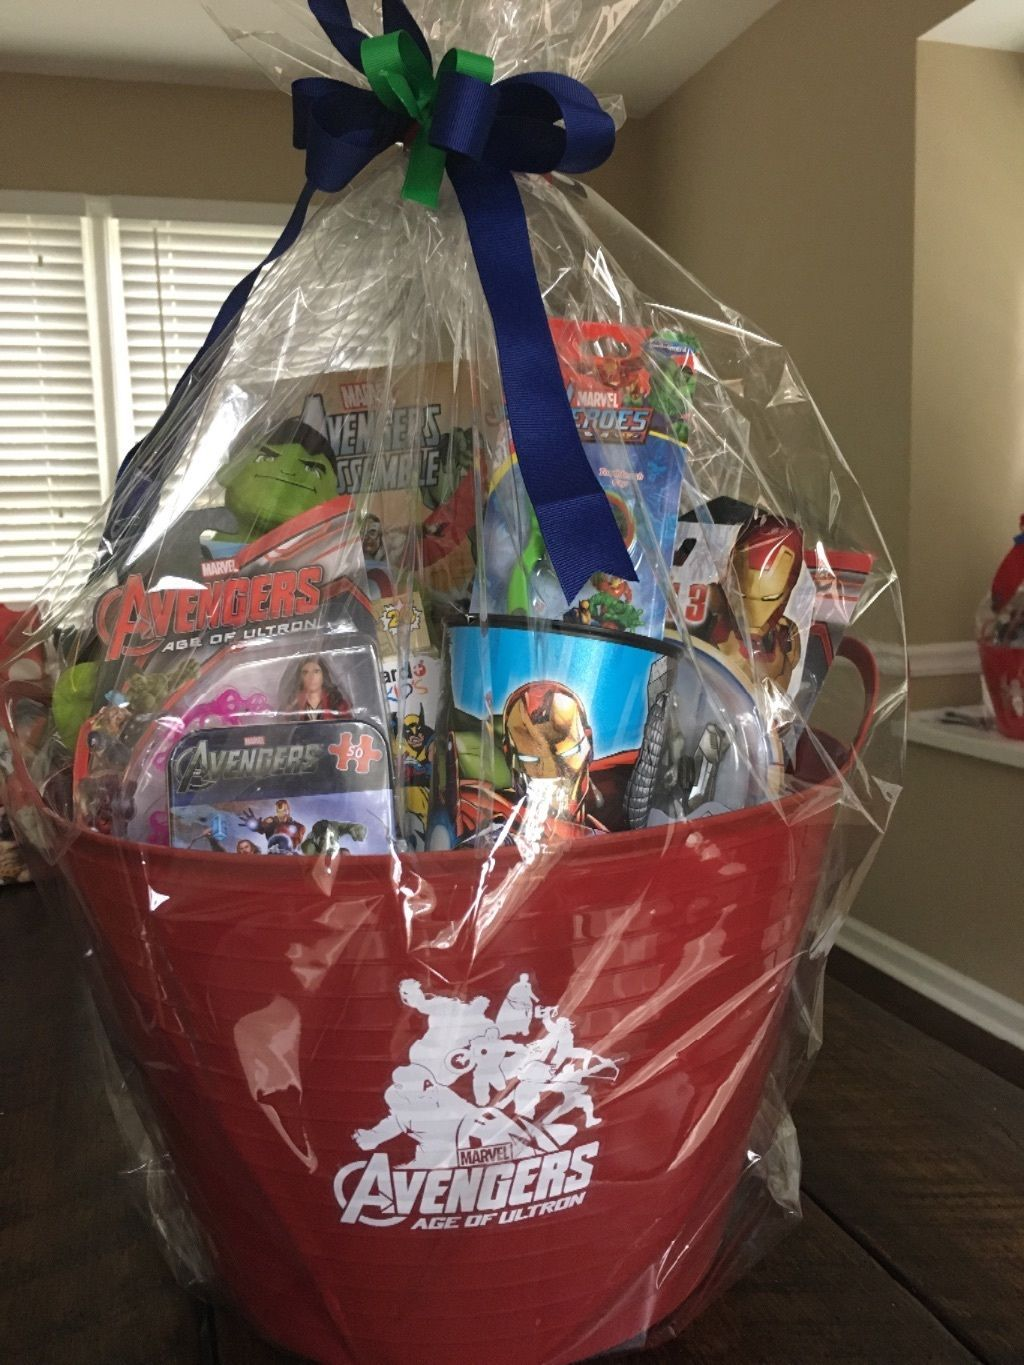 Marvel avengers ultron gift basket with 3 75 action figures ebay marvel avengers ultron gift basket with 3 75 action figures ebay negle Gallery